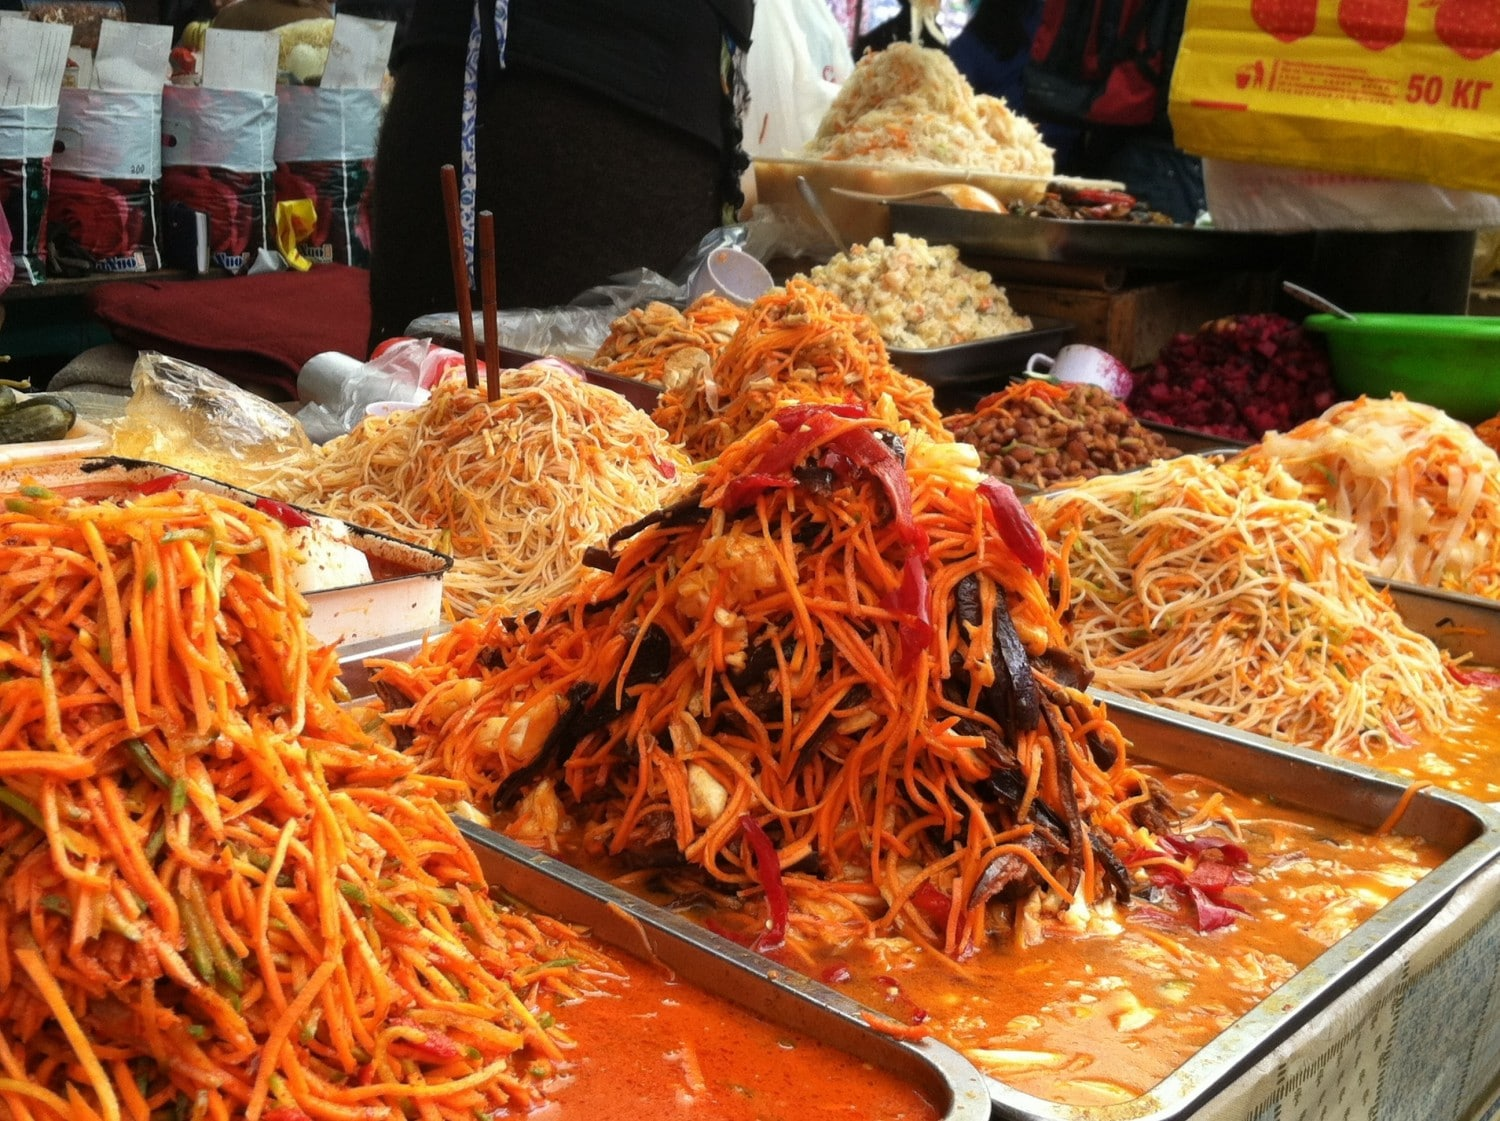 Korean carrot salad at Osh Bazaar in Bishkek